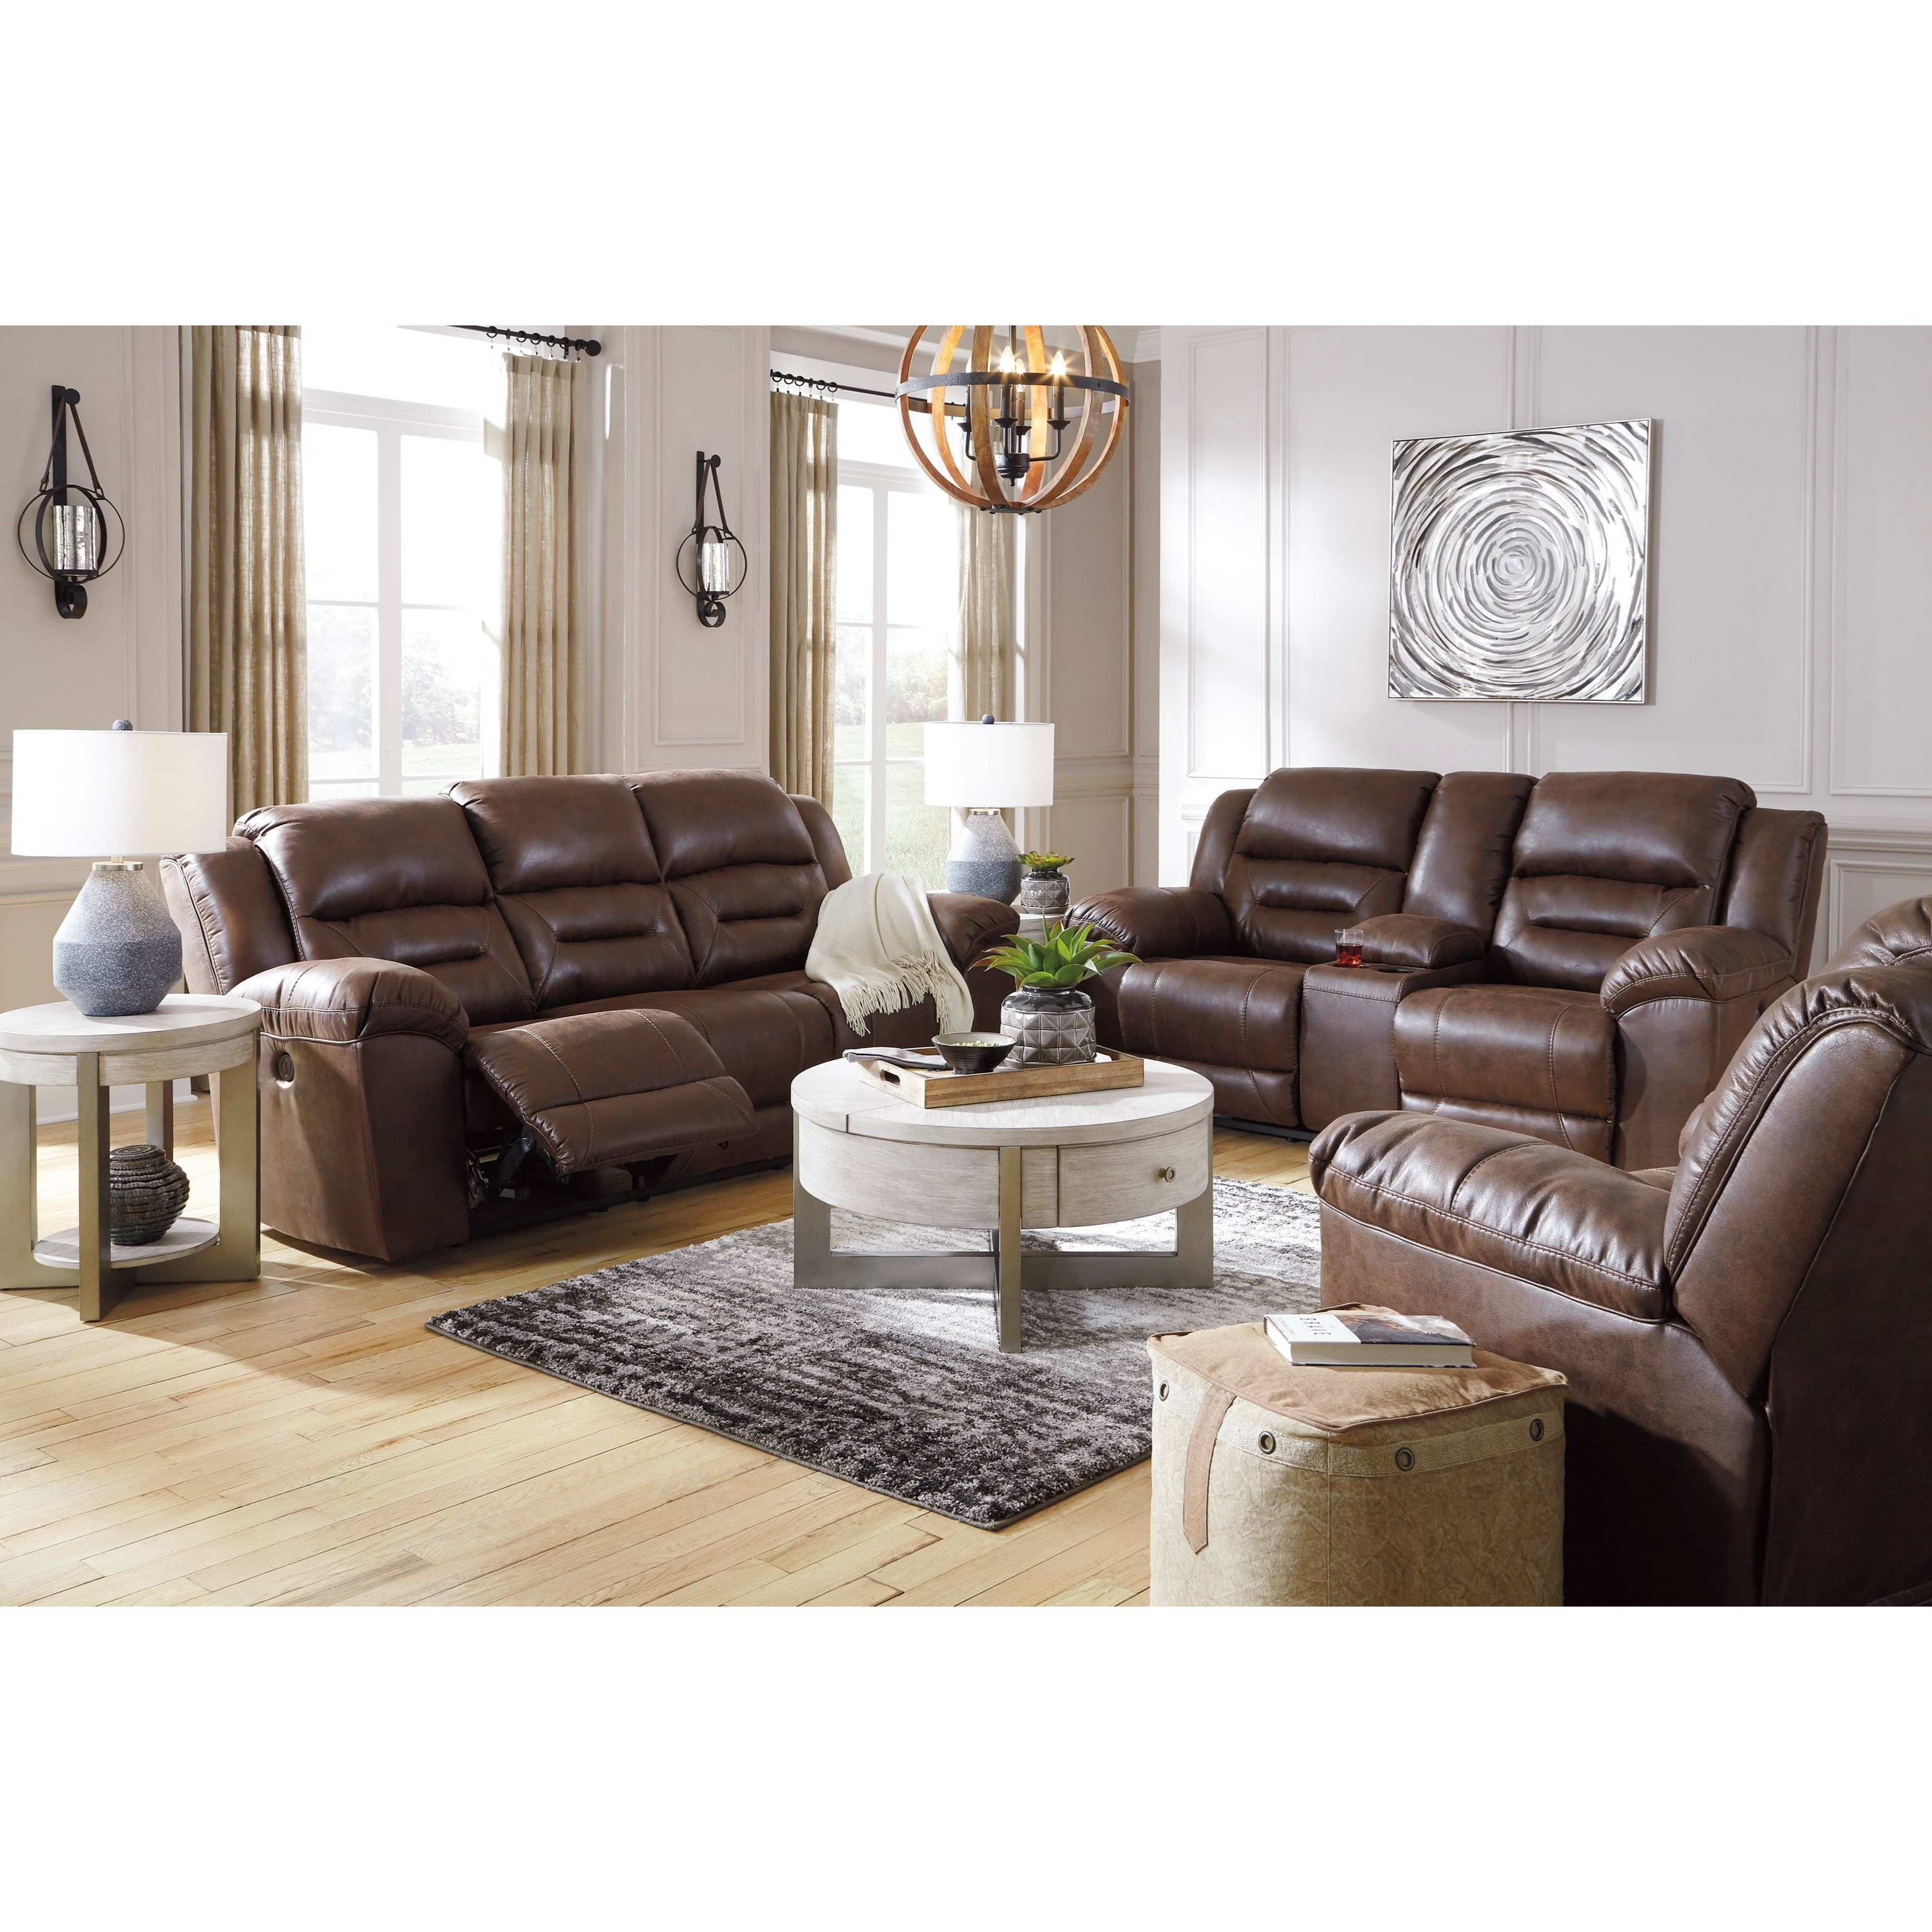 Stoneland Power Reclining Living Room Group by Signature Design by Ashley at Darvin Furniture